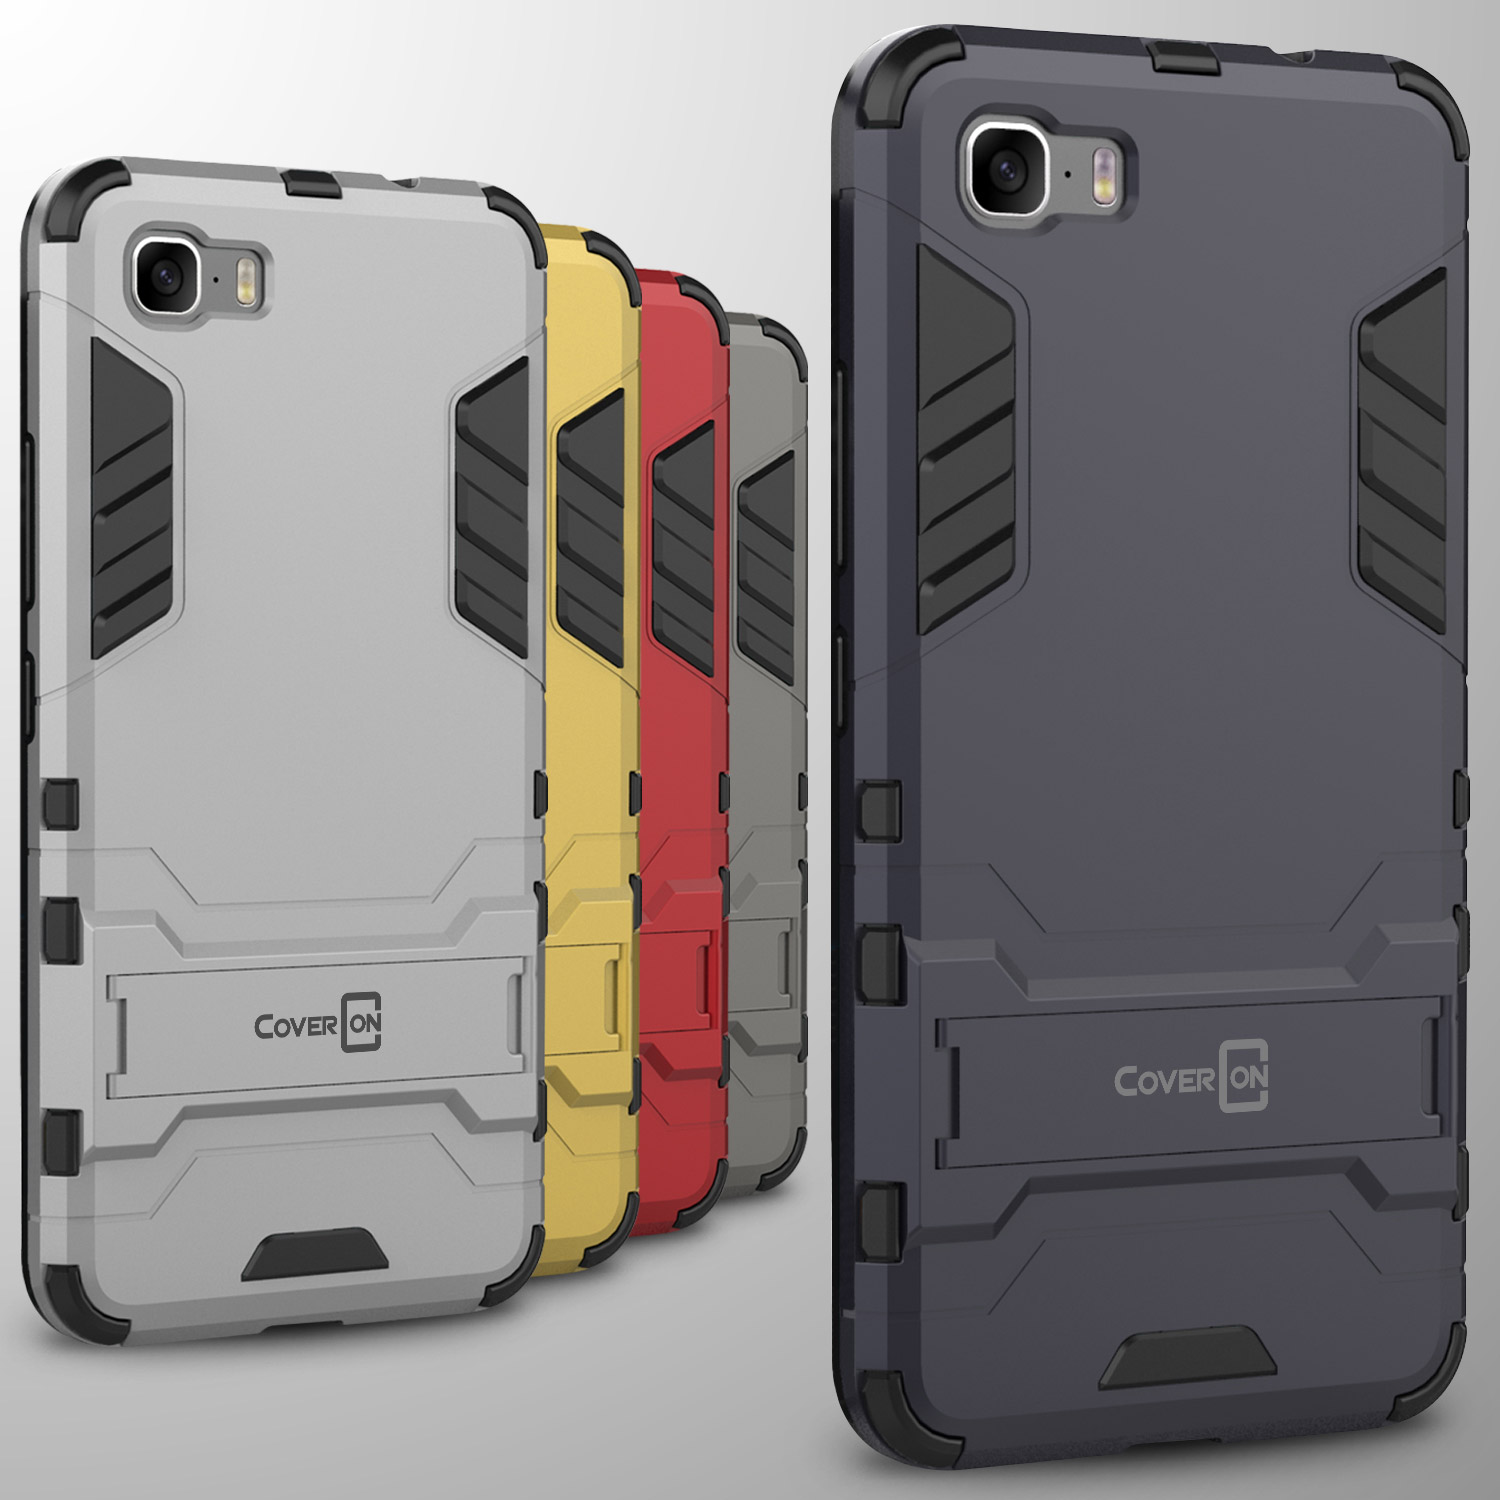 classic fit 6ab77 3ecee For Asus Zenfone 3s Max Case Hard Kickstand Protective Slim Phone ...